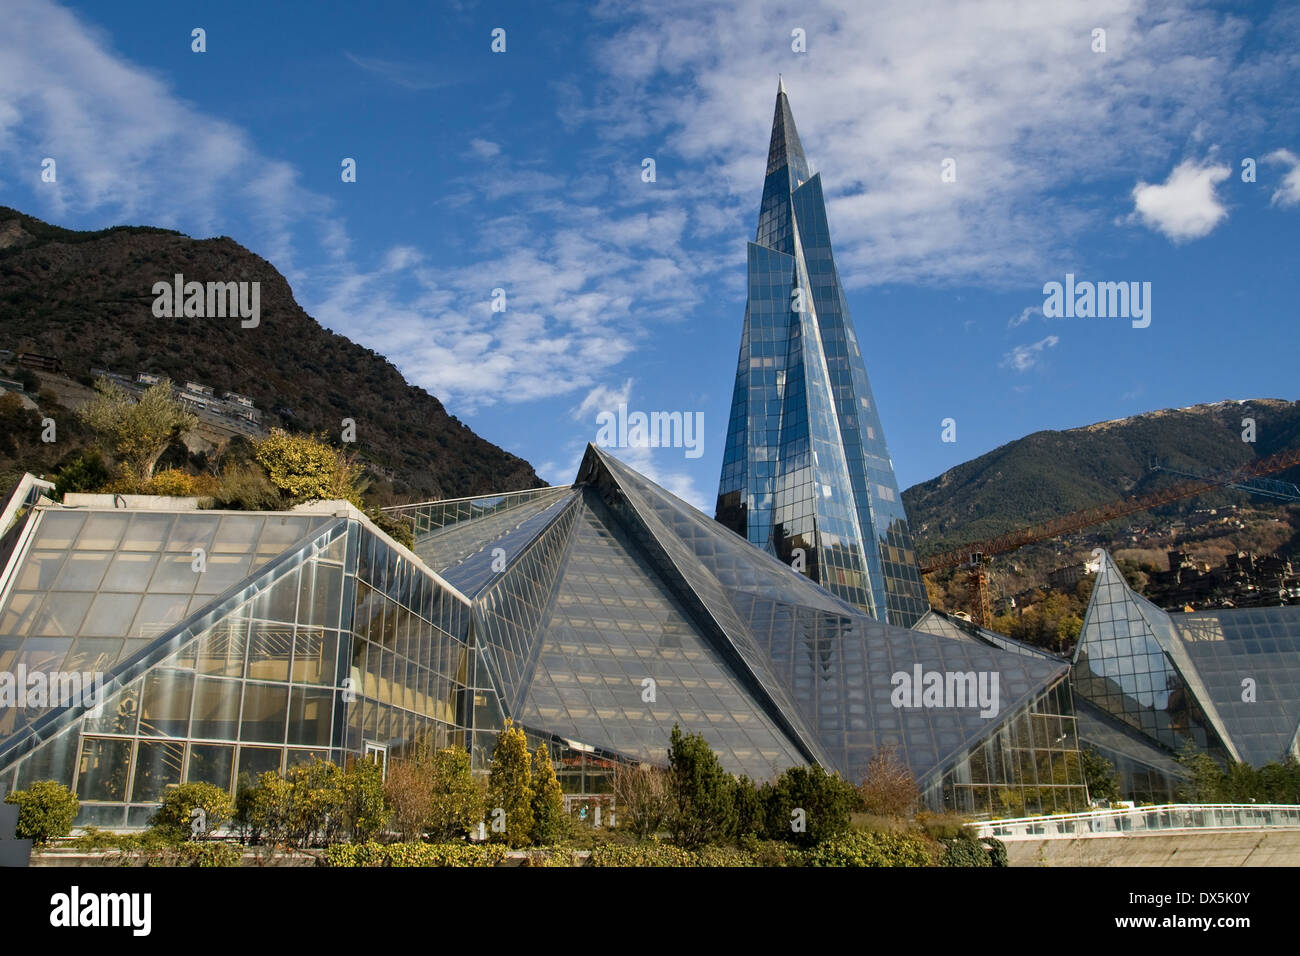 Modern glass pyramid building in Escaldes-Engordany, Andorra. - Stock Image